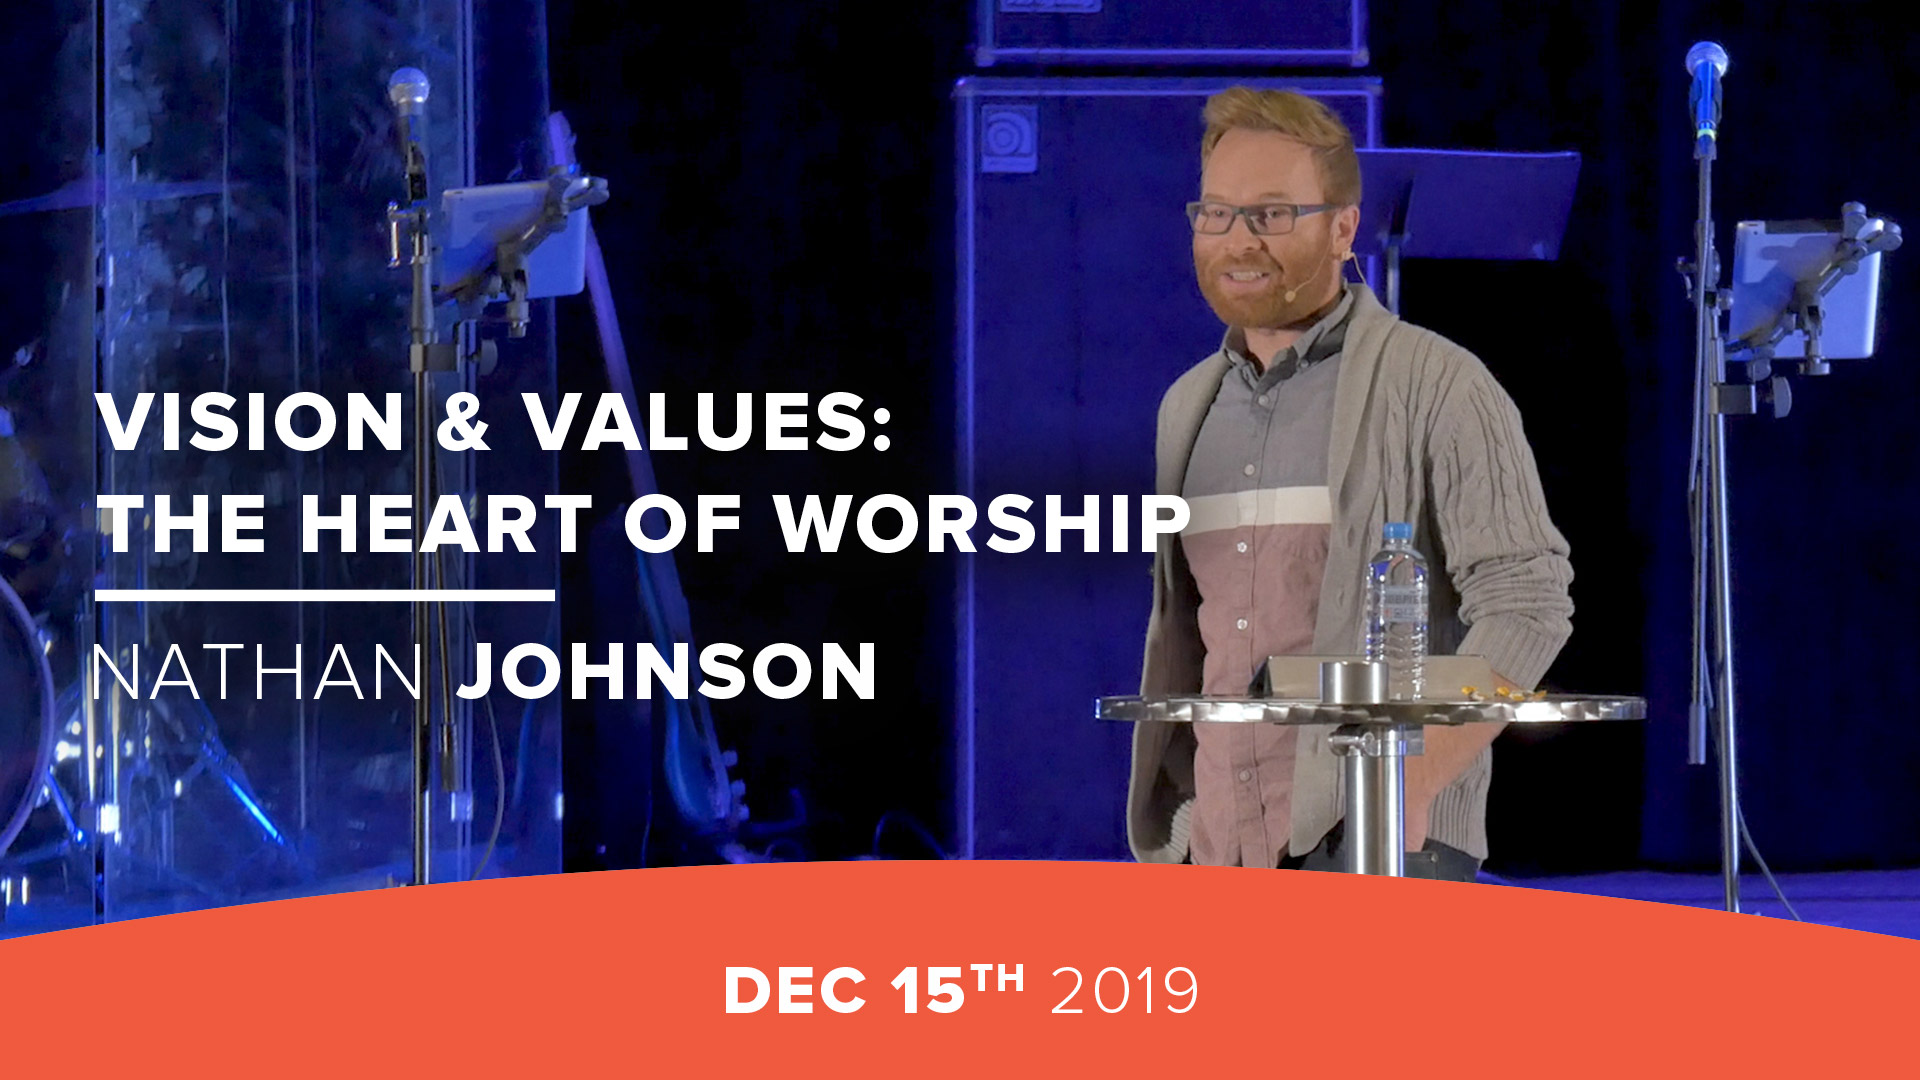 Vision & Values: The Heart of Worship